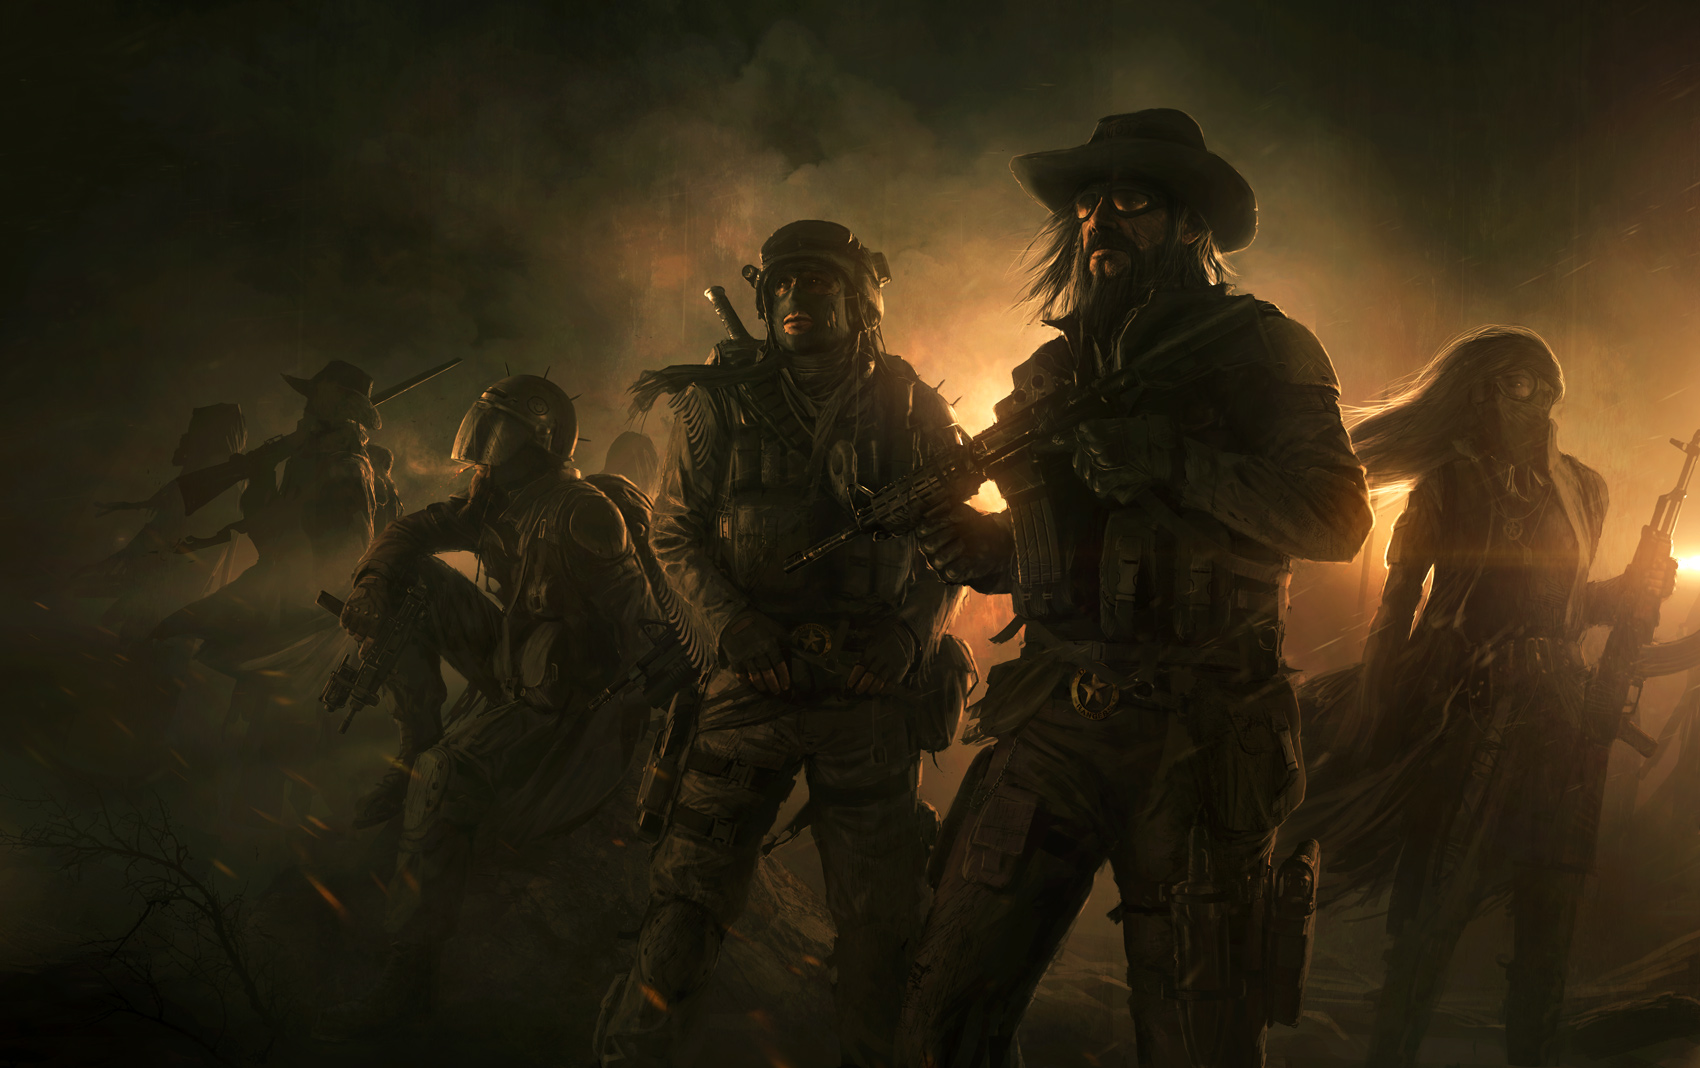 Wasteland 2 Concept Art